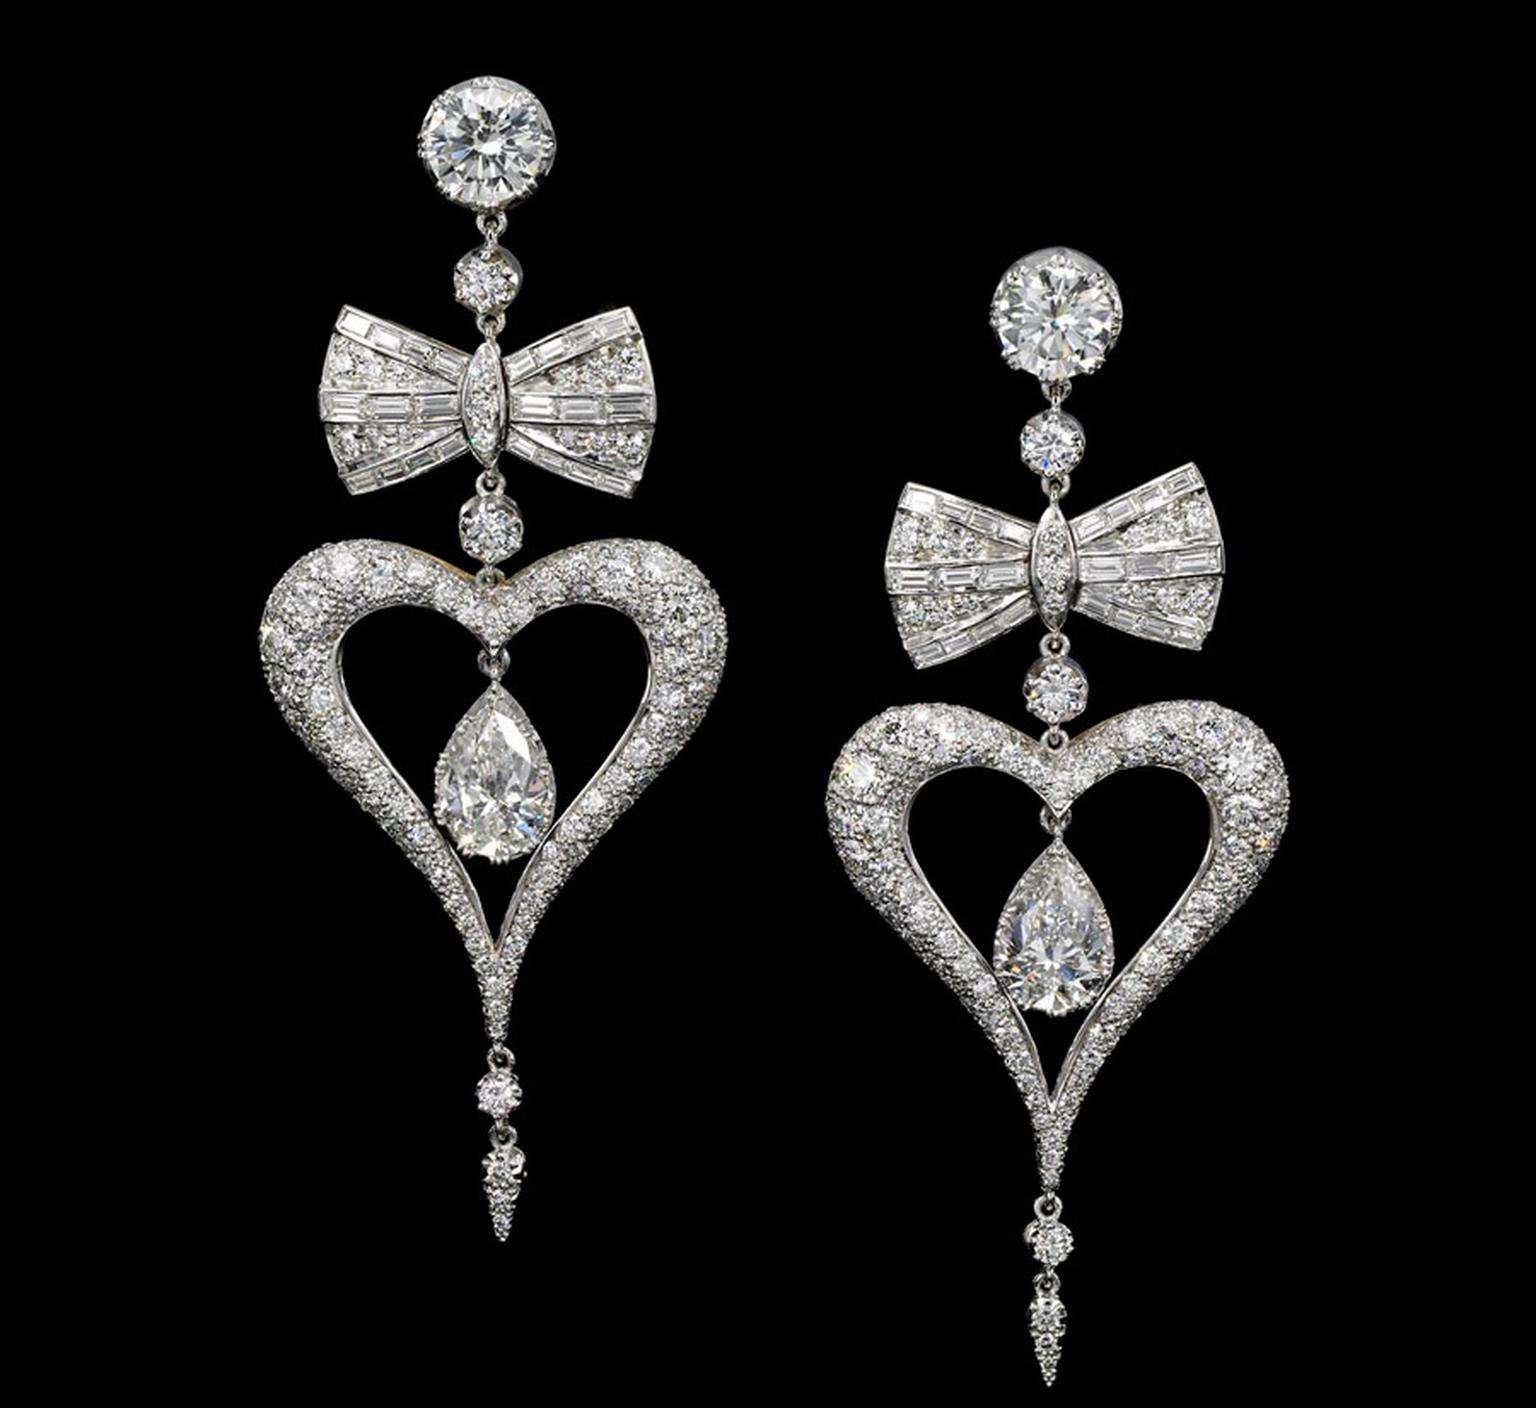 Jessica-McCormack-Transposed-Heart-and-Bow-Diamond-Earrings